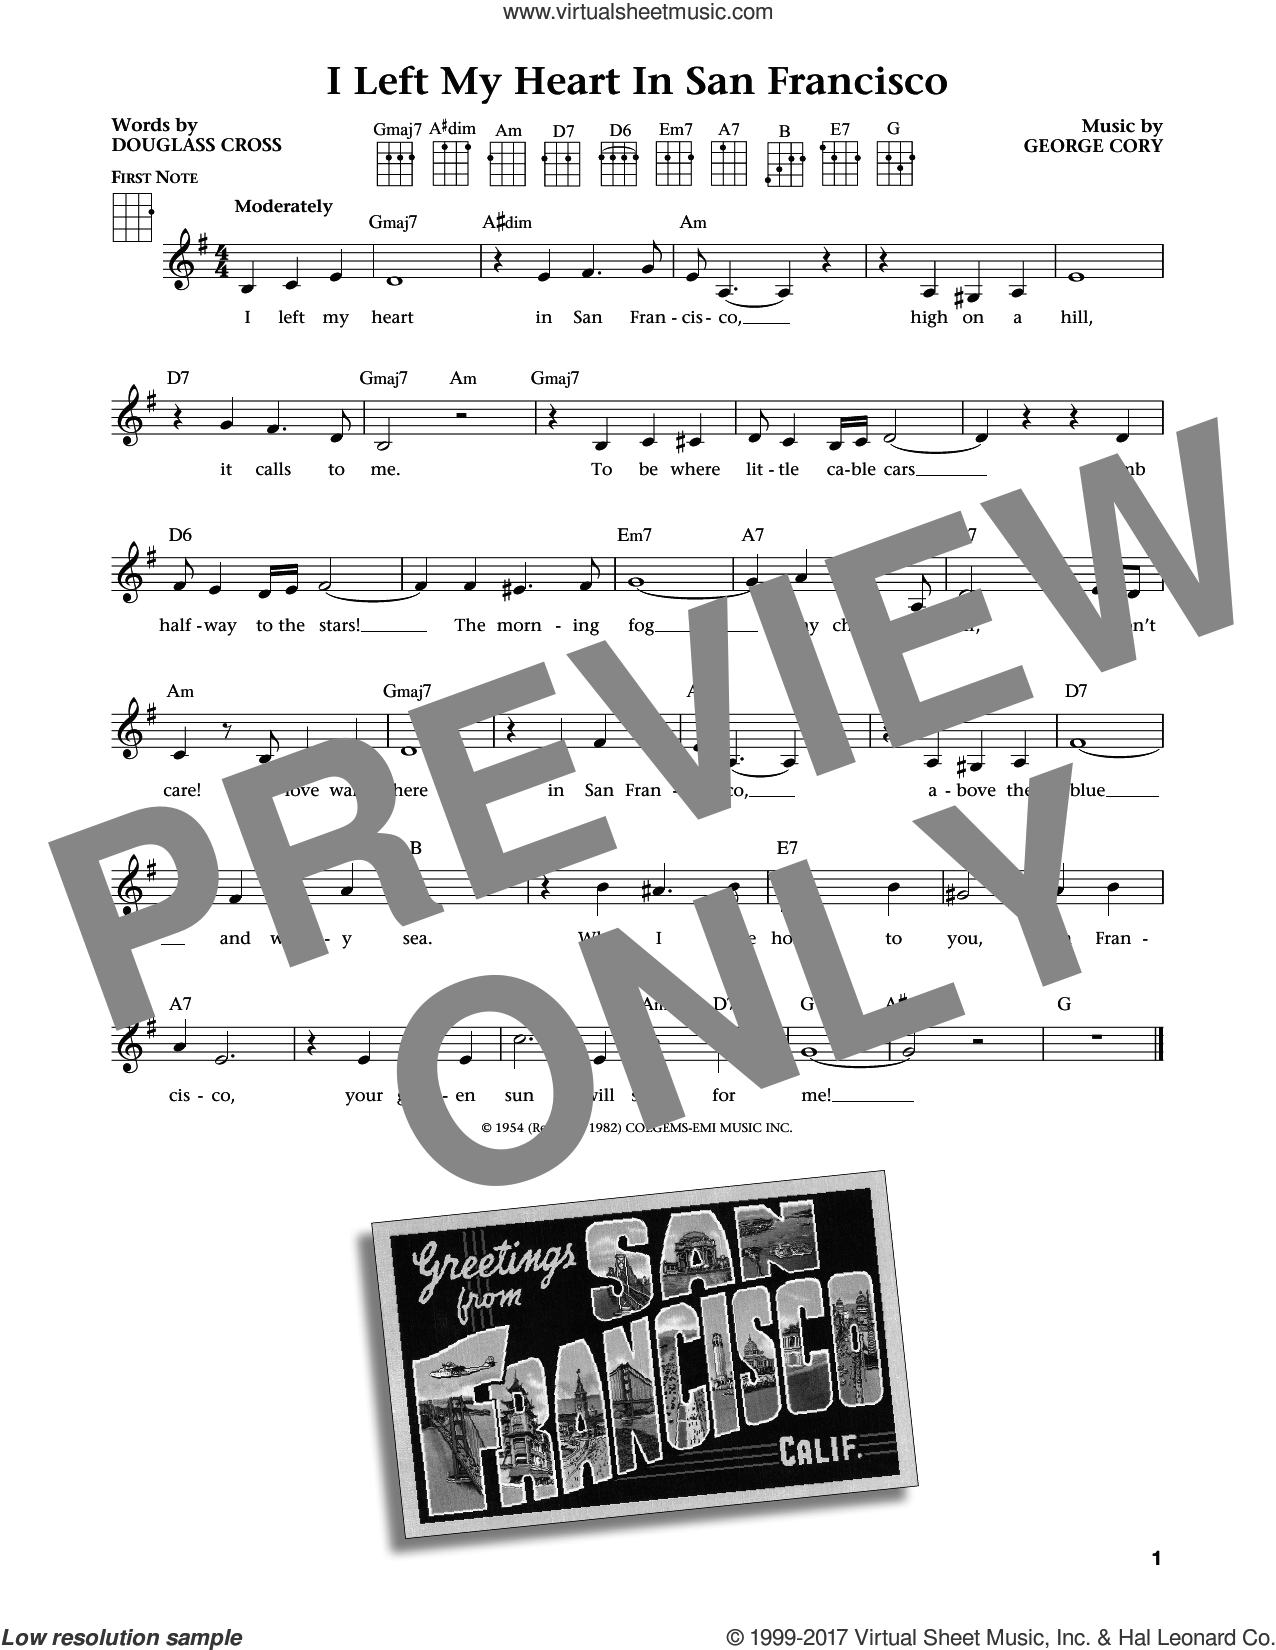 I Left My Heart In San Francisco sheet music for ukulele by George Cory, Jim Beloff, Liz Beloff, Tony Bennett and Douglass Cross, intermediate skill level